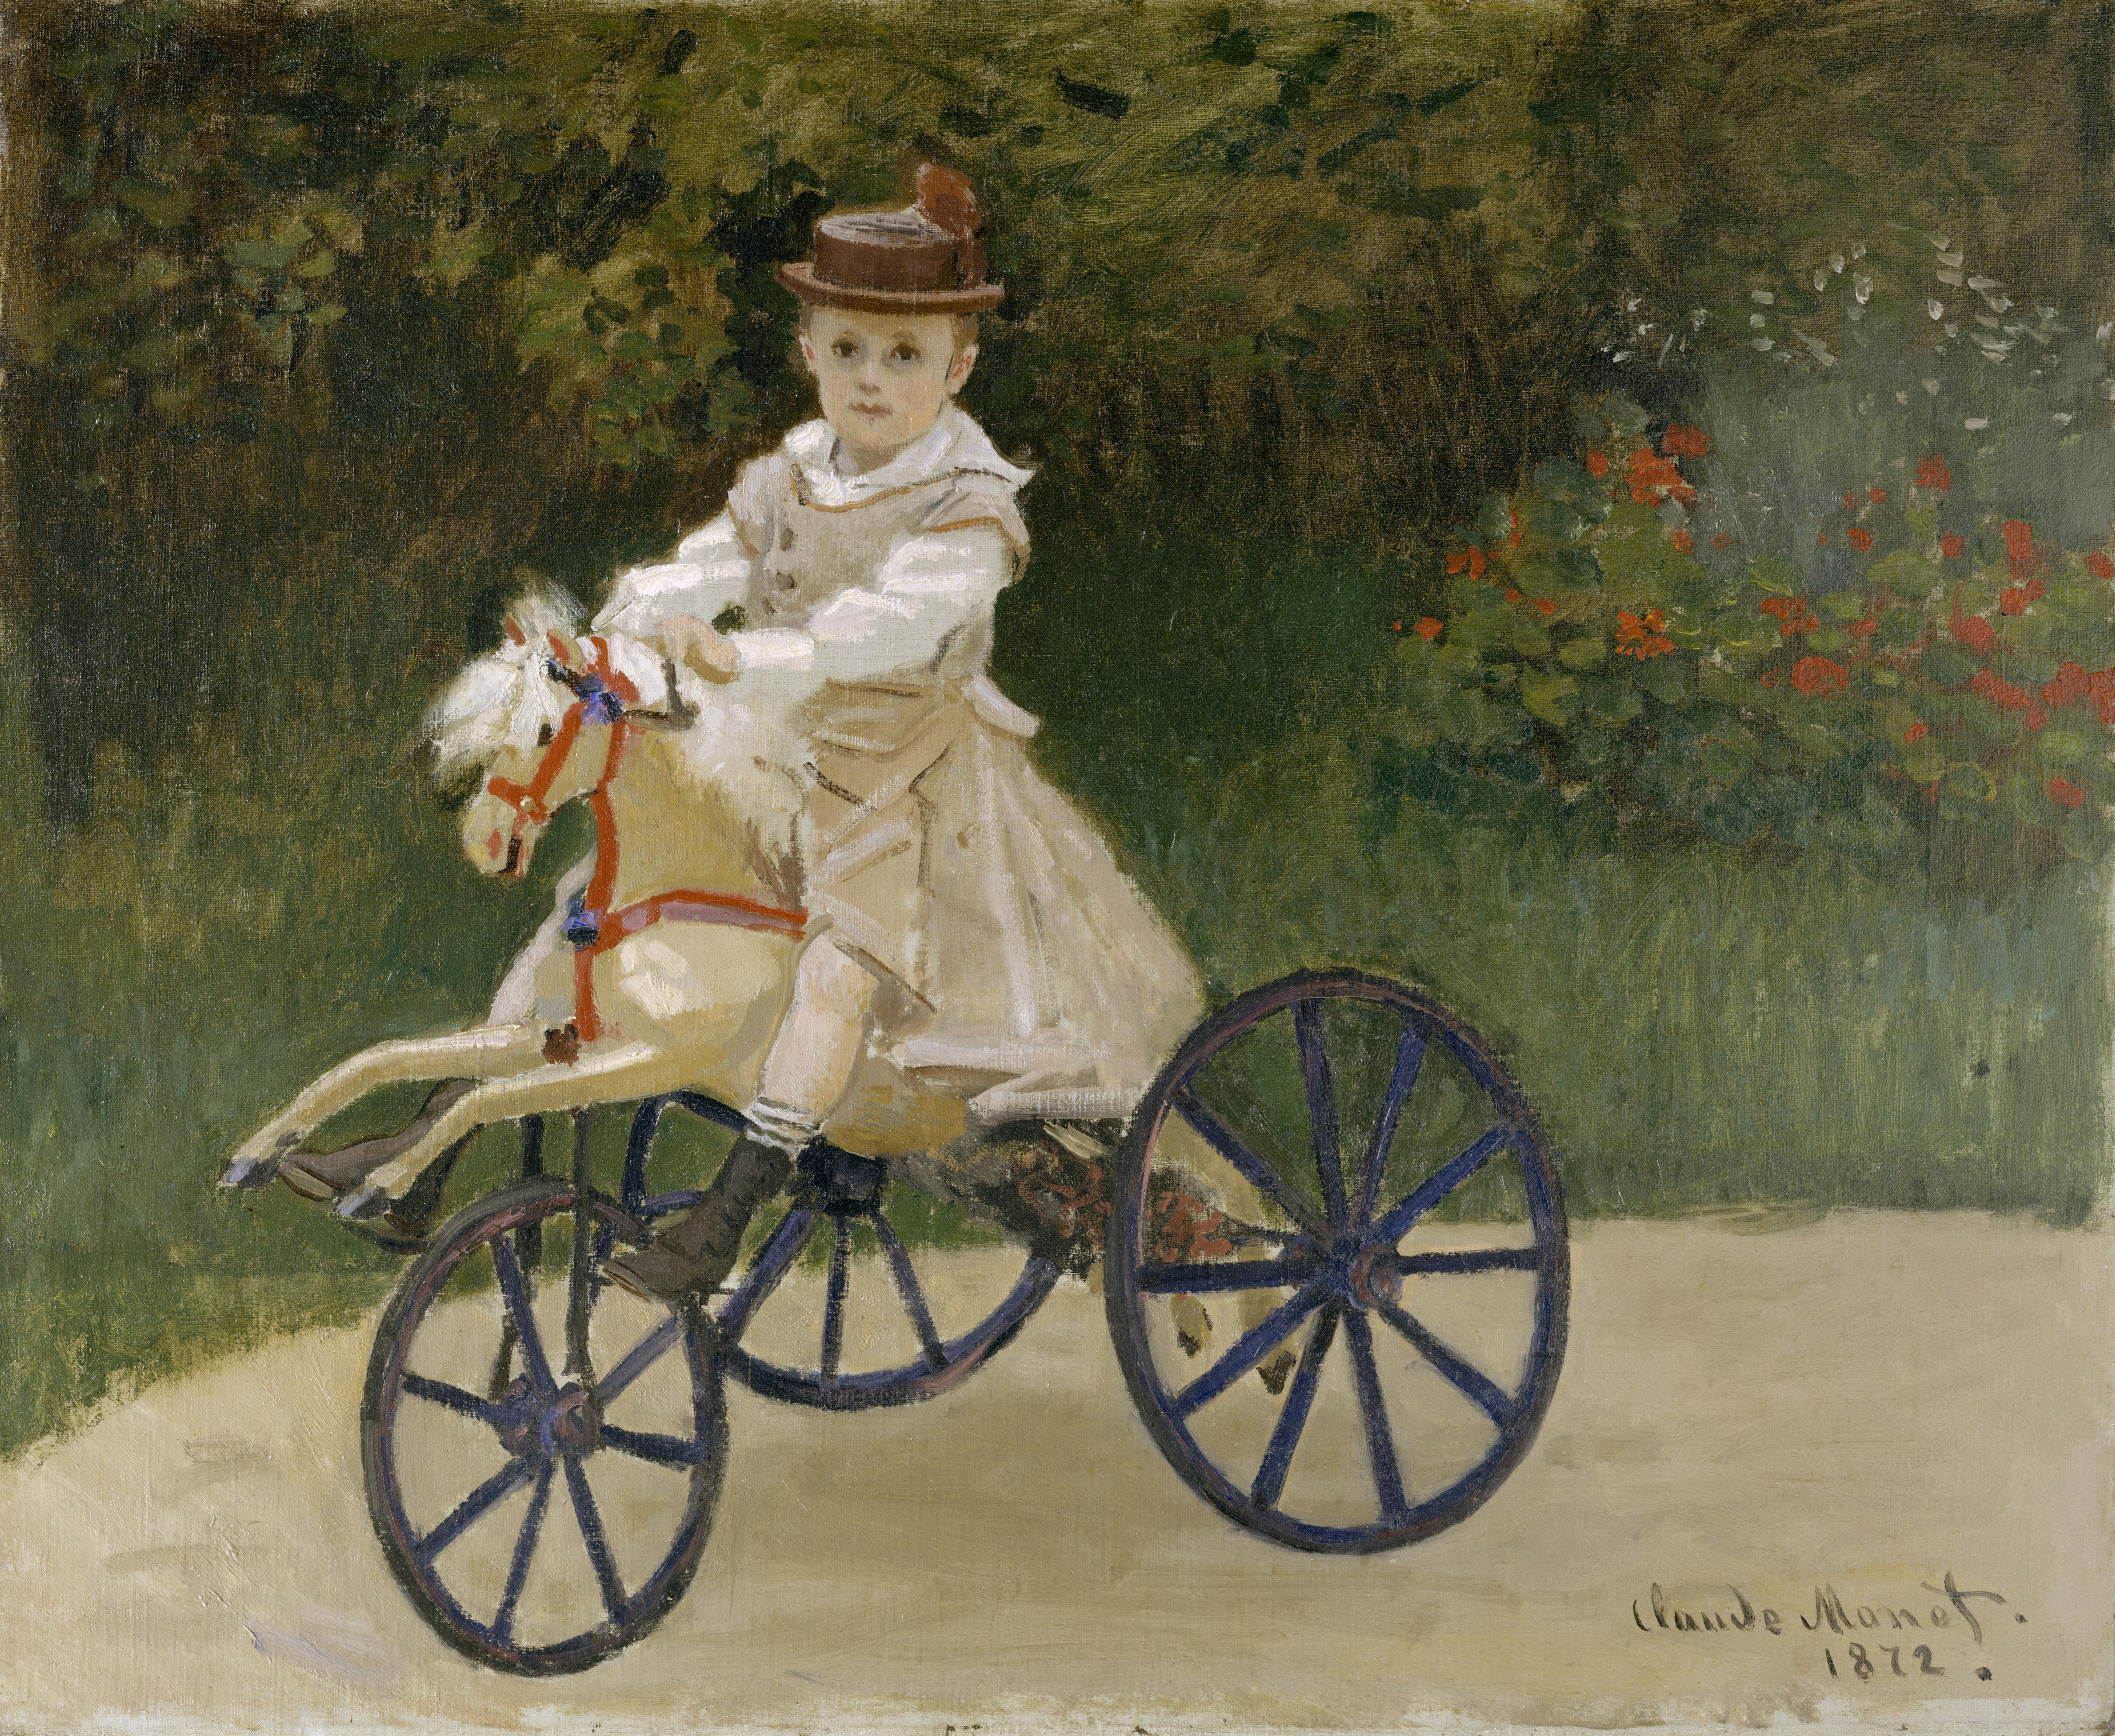 Claude Monet Jean Monet On His Hobby Horse